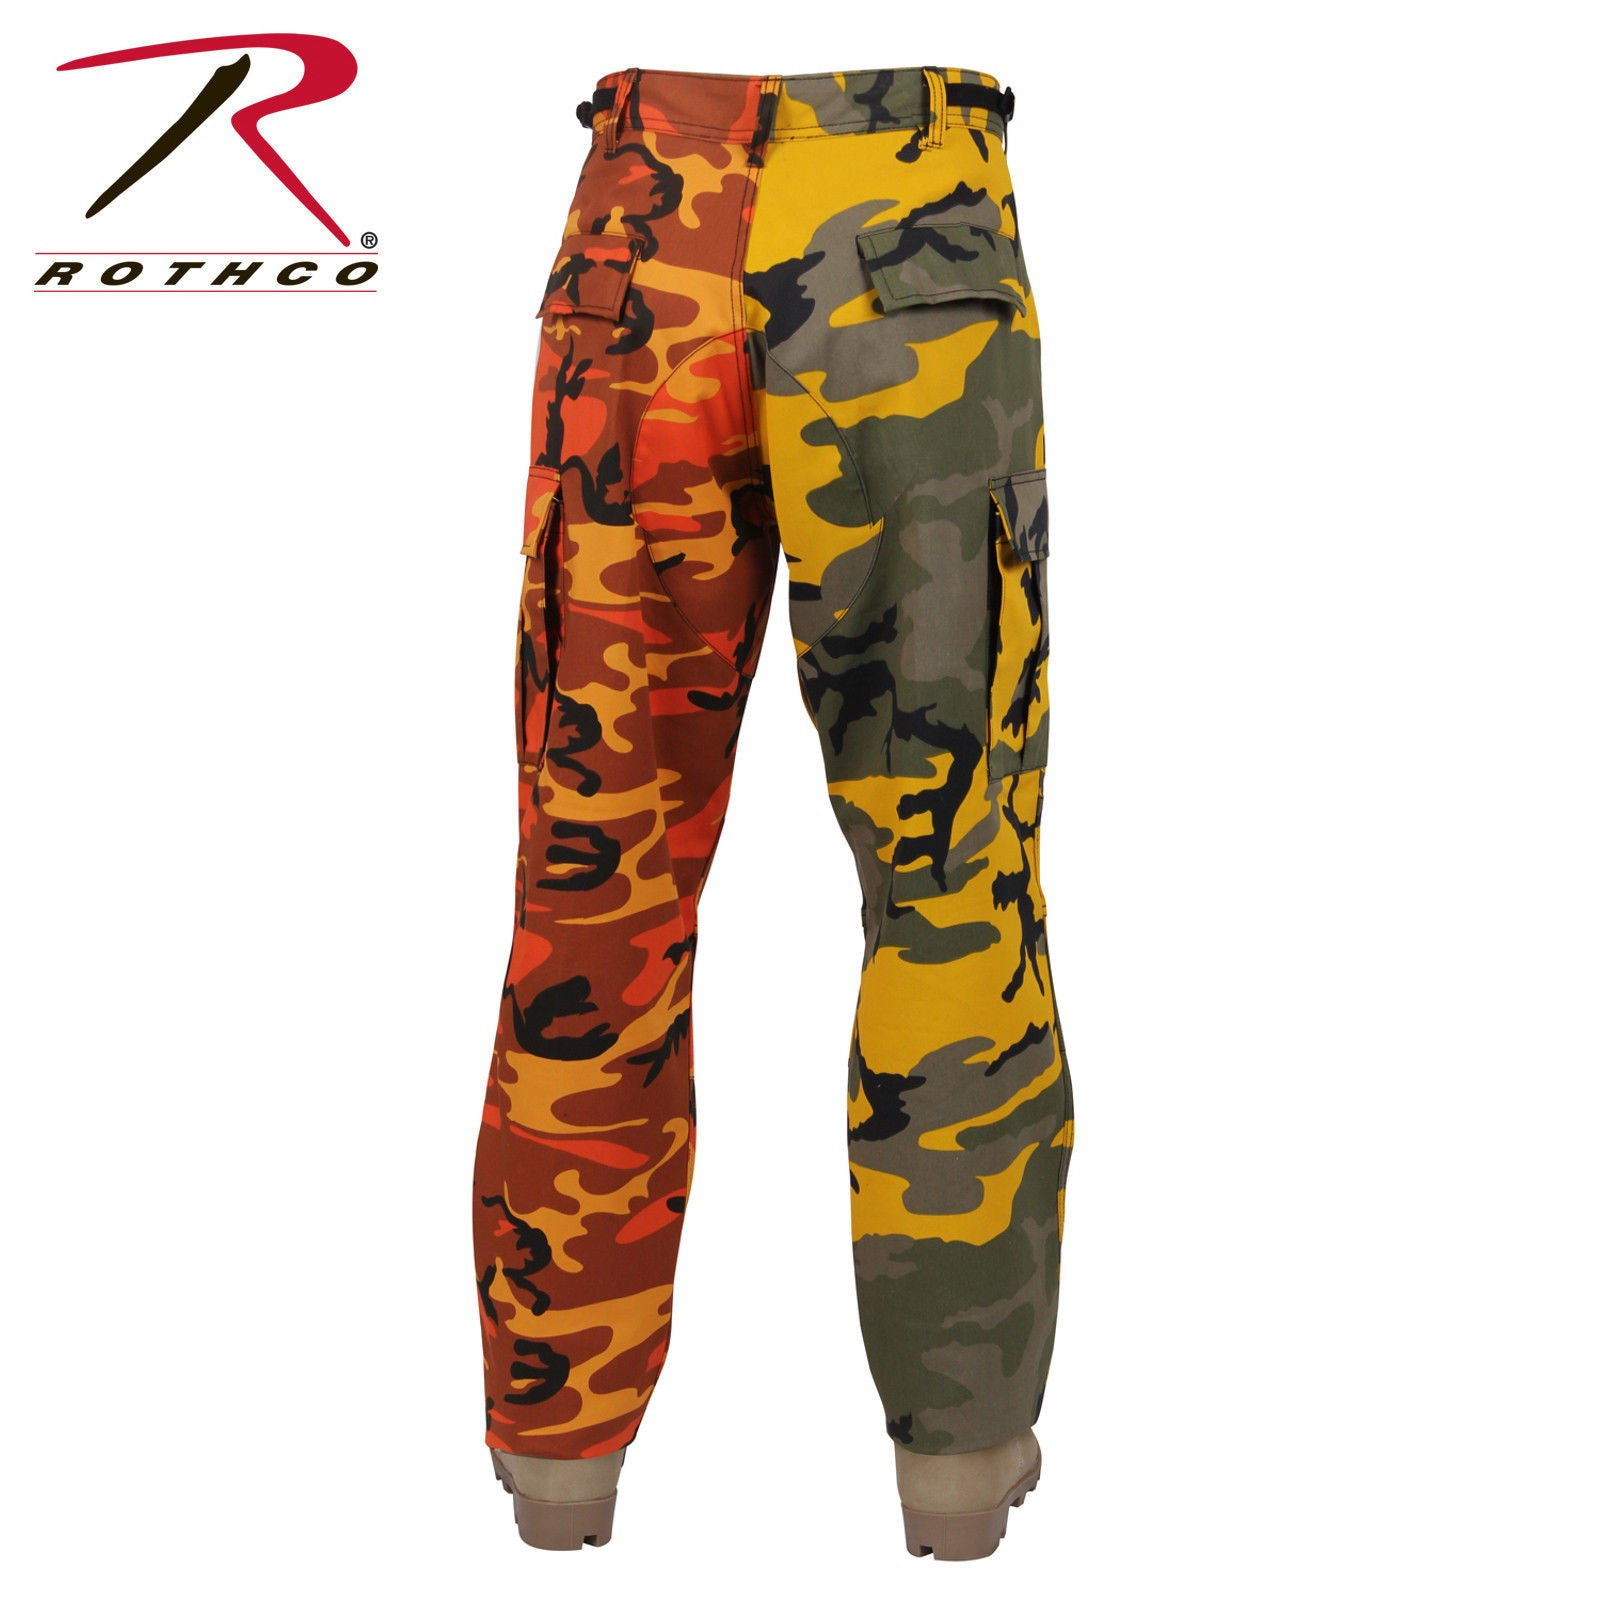 Rothco Two-Tone Camo BDU Pants Yellow and Orange or Ultra Violet and City